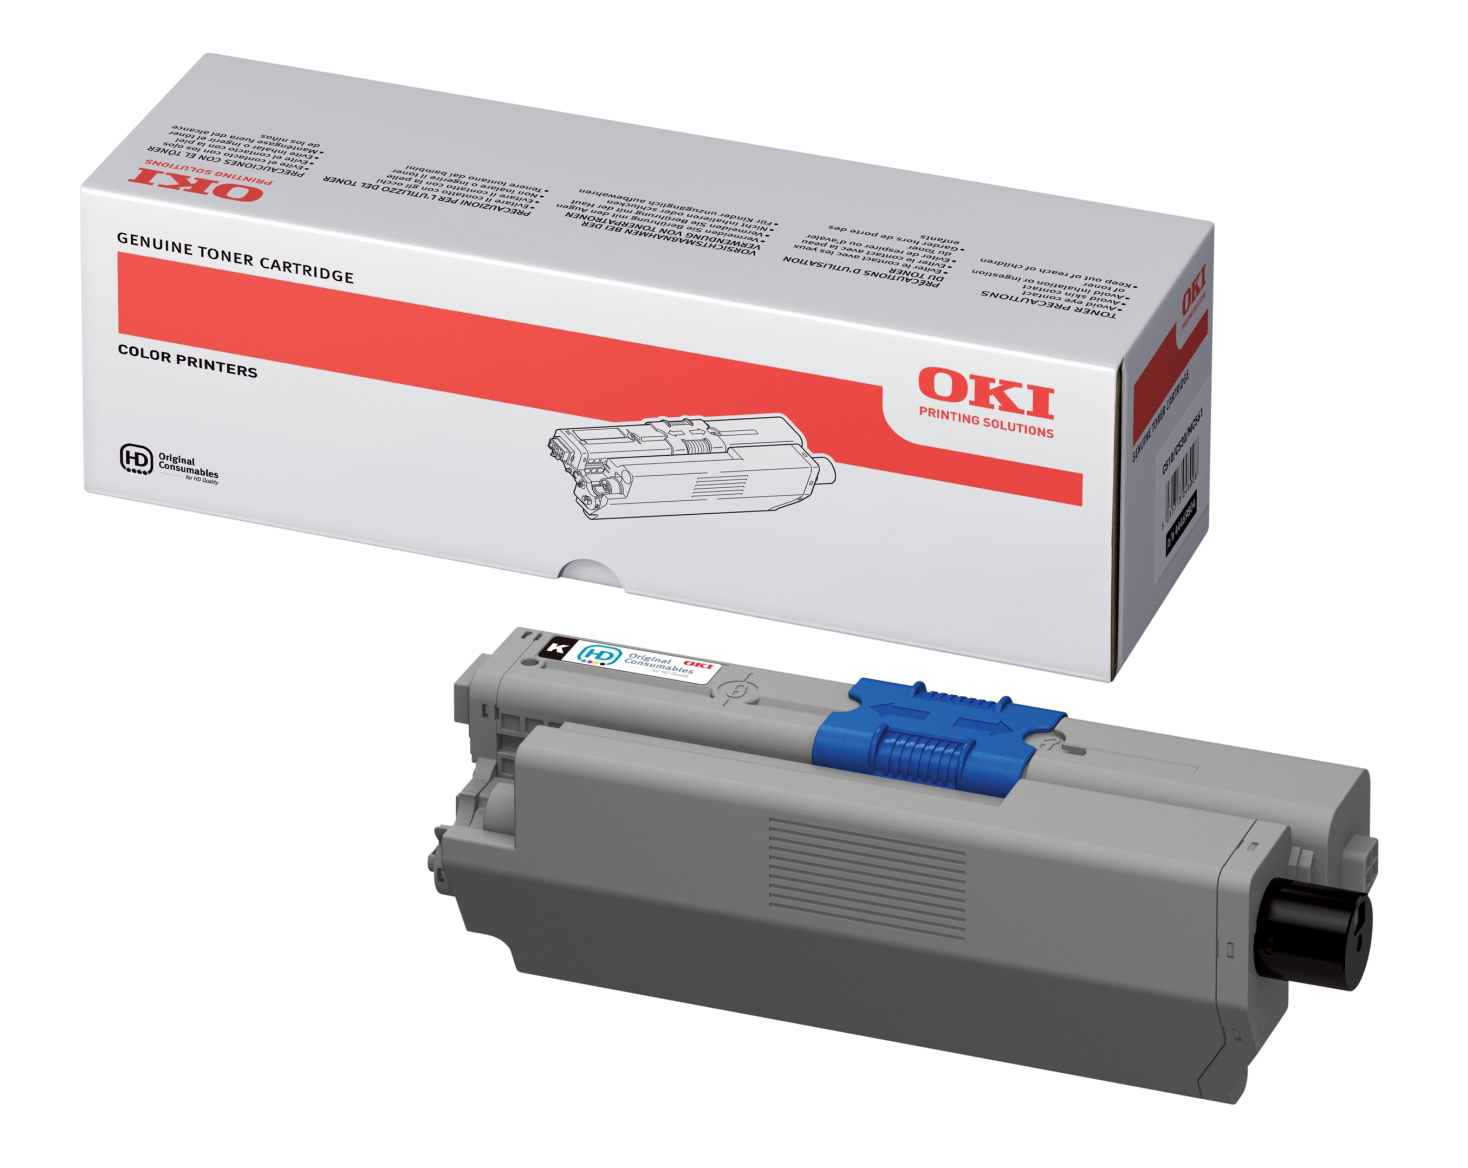 Genuine High Capacity Black Oki 44469804 Toner Cartridge - (44469804)